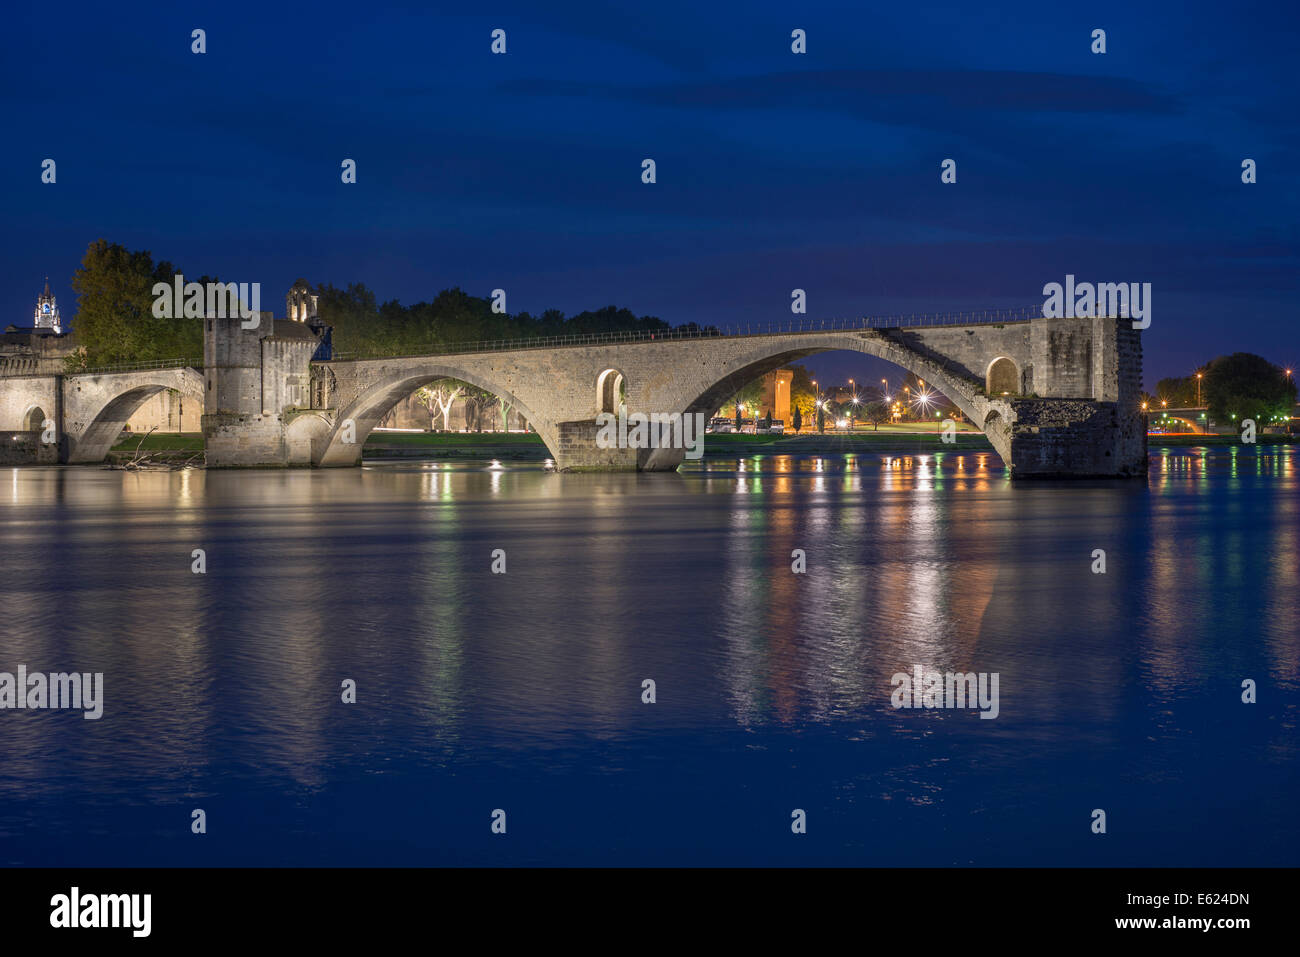 Rhône with the Pont Saint-Bénézet bridge, also known as Pont d'Avignon, at night, Avignon, Provence - Stock Image